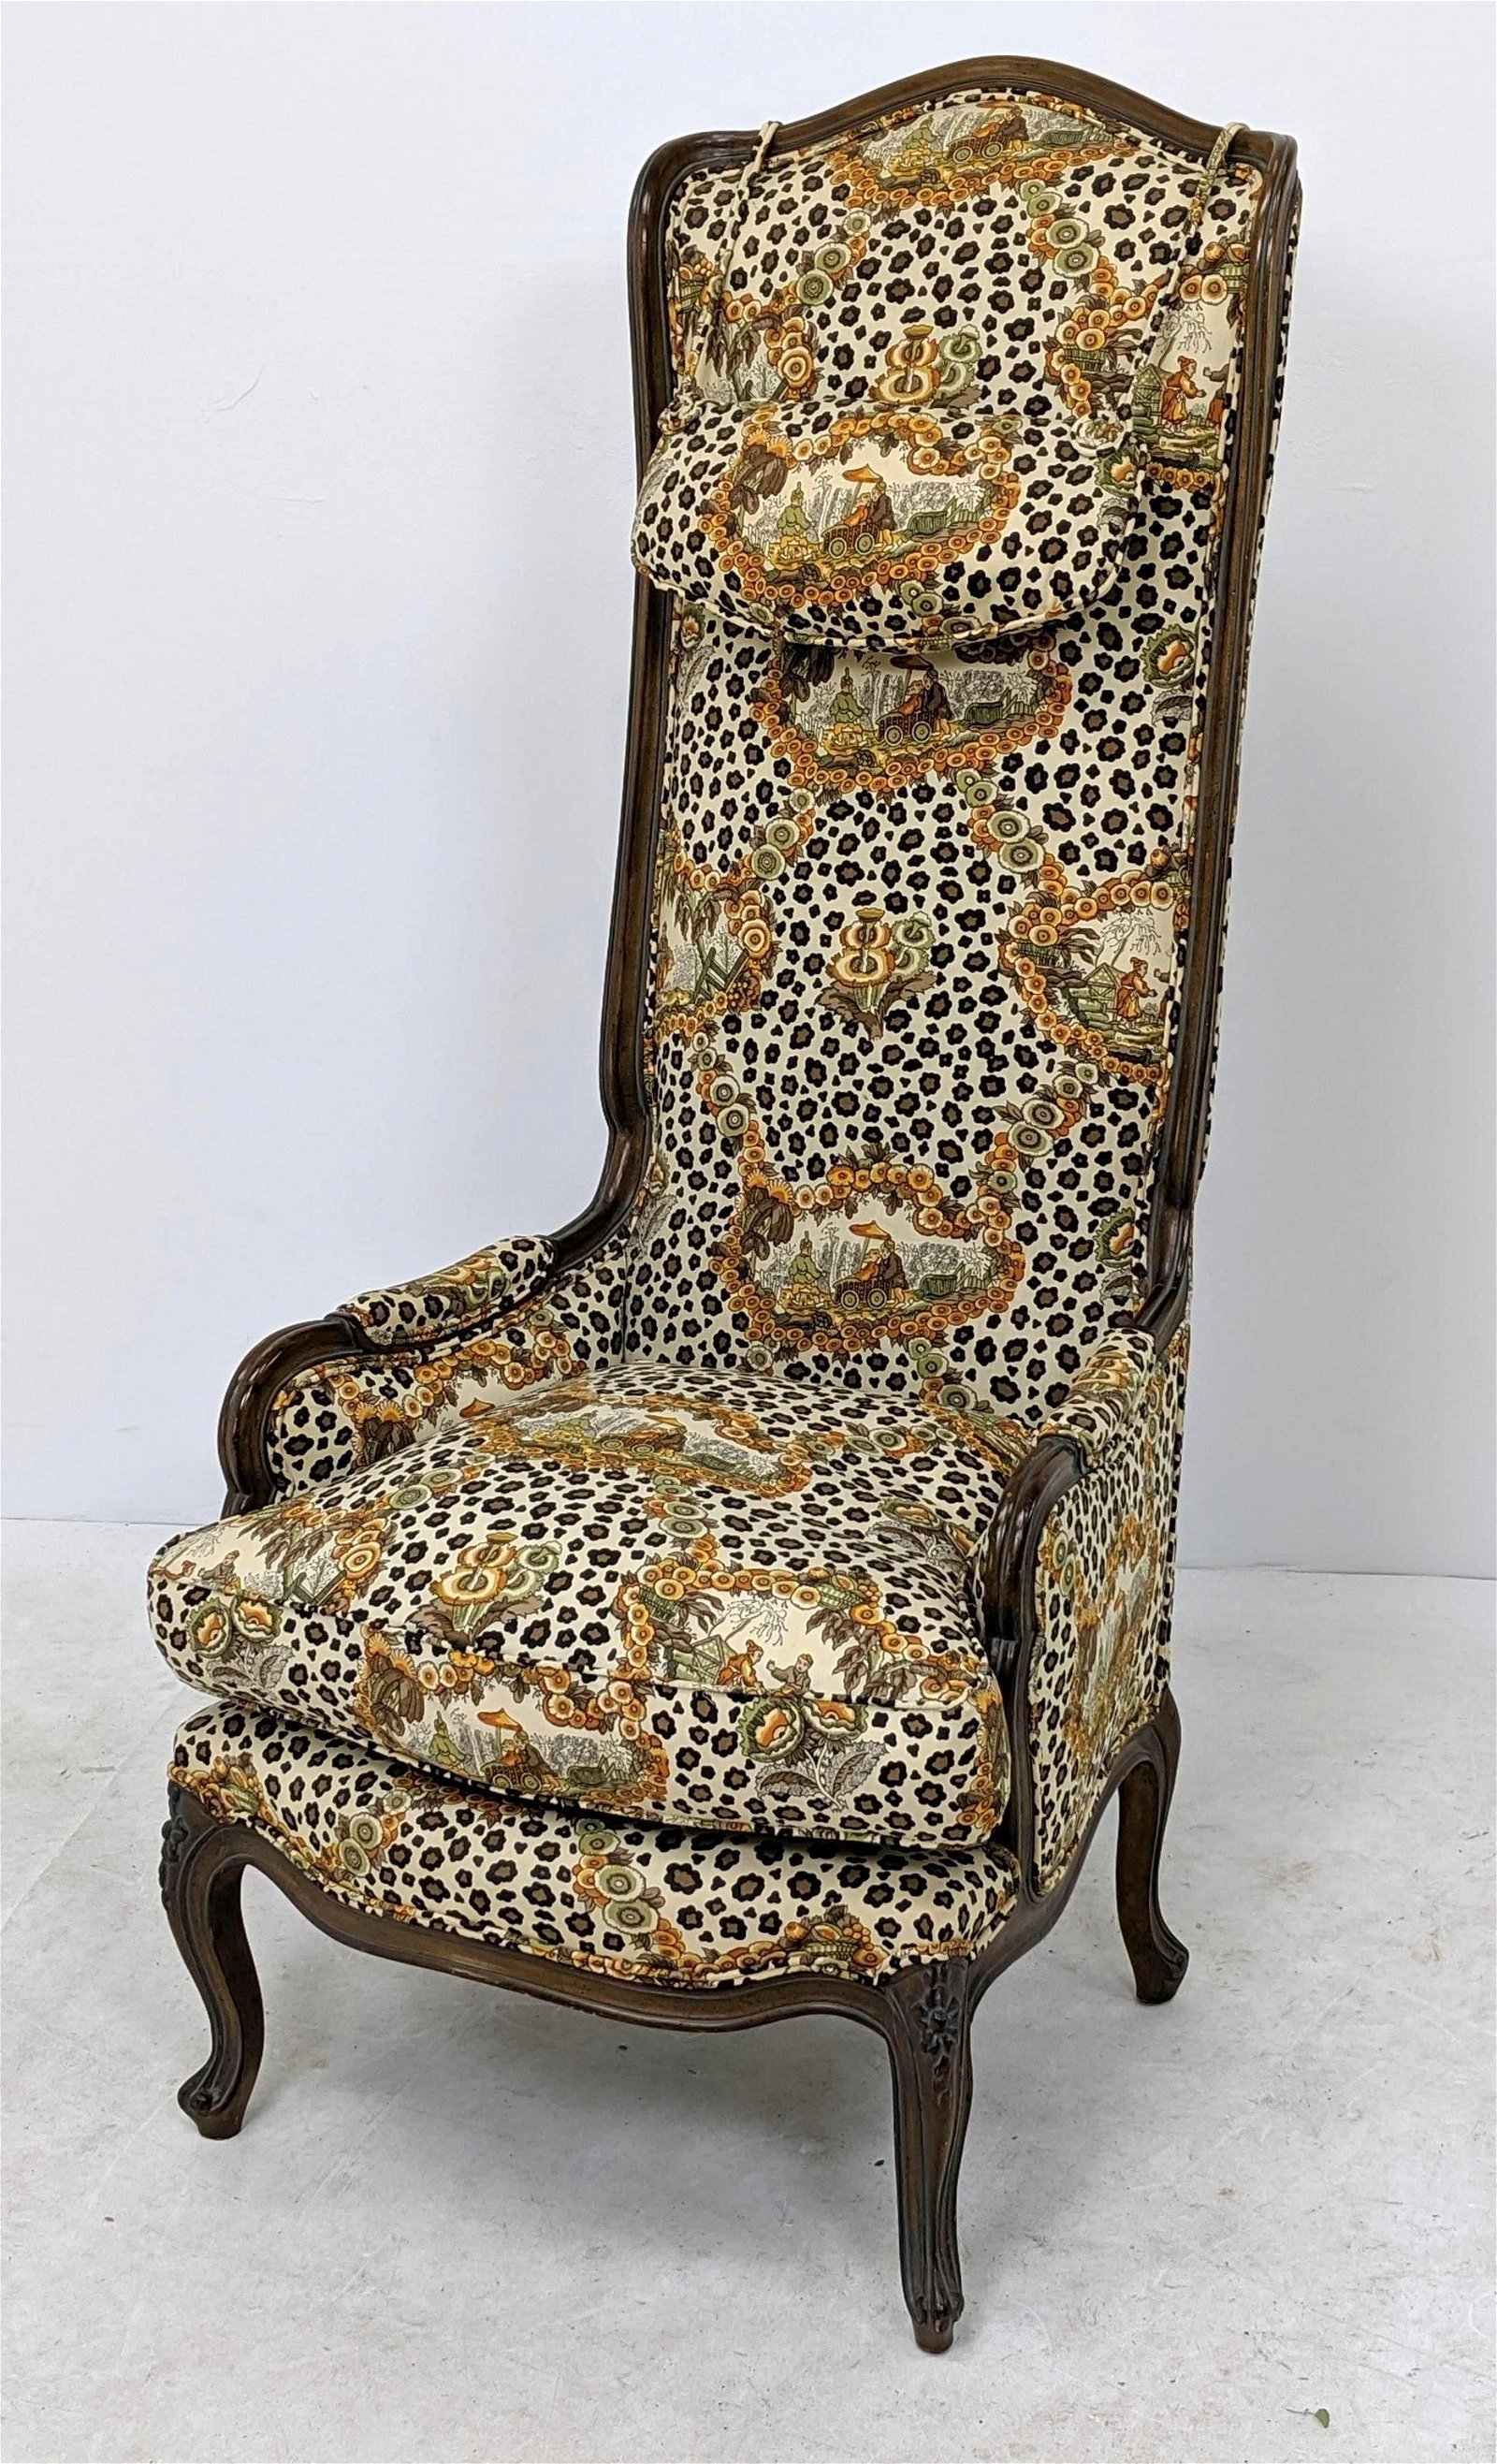 Tall Back Country French Style Arm Chair. Playful anima